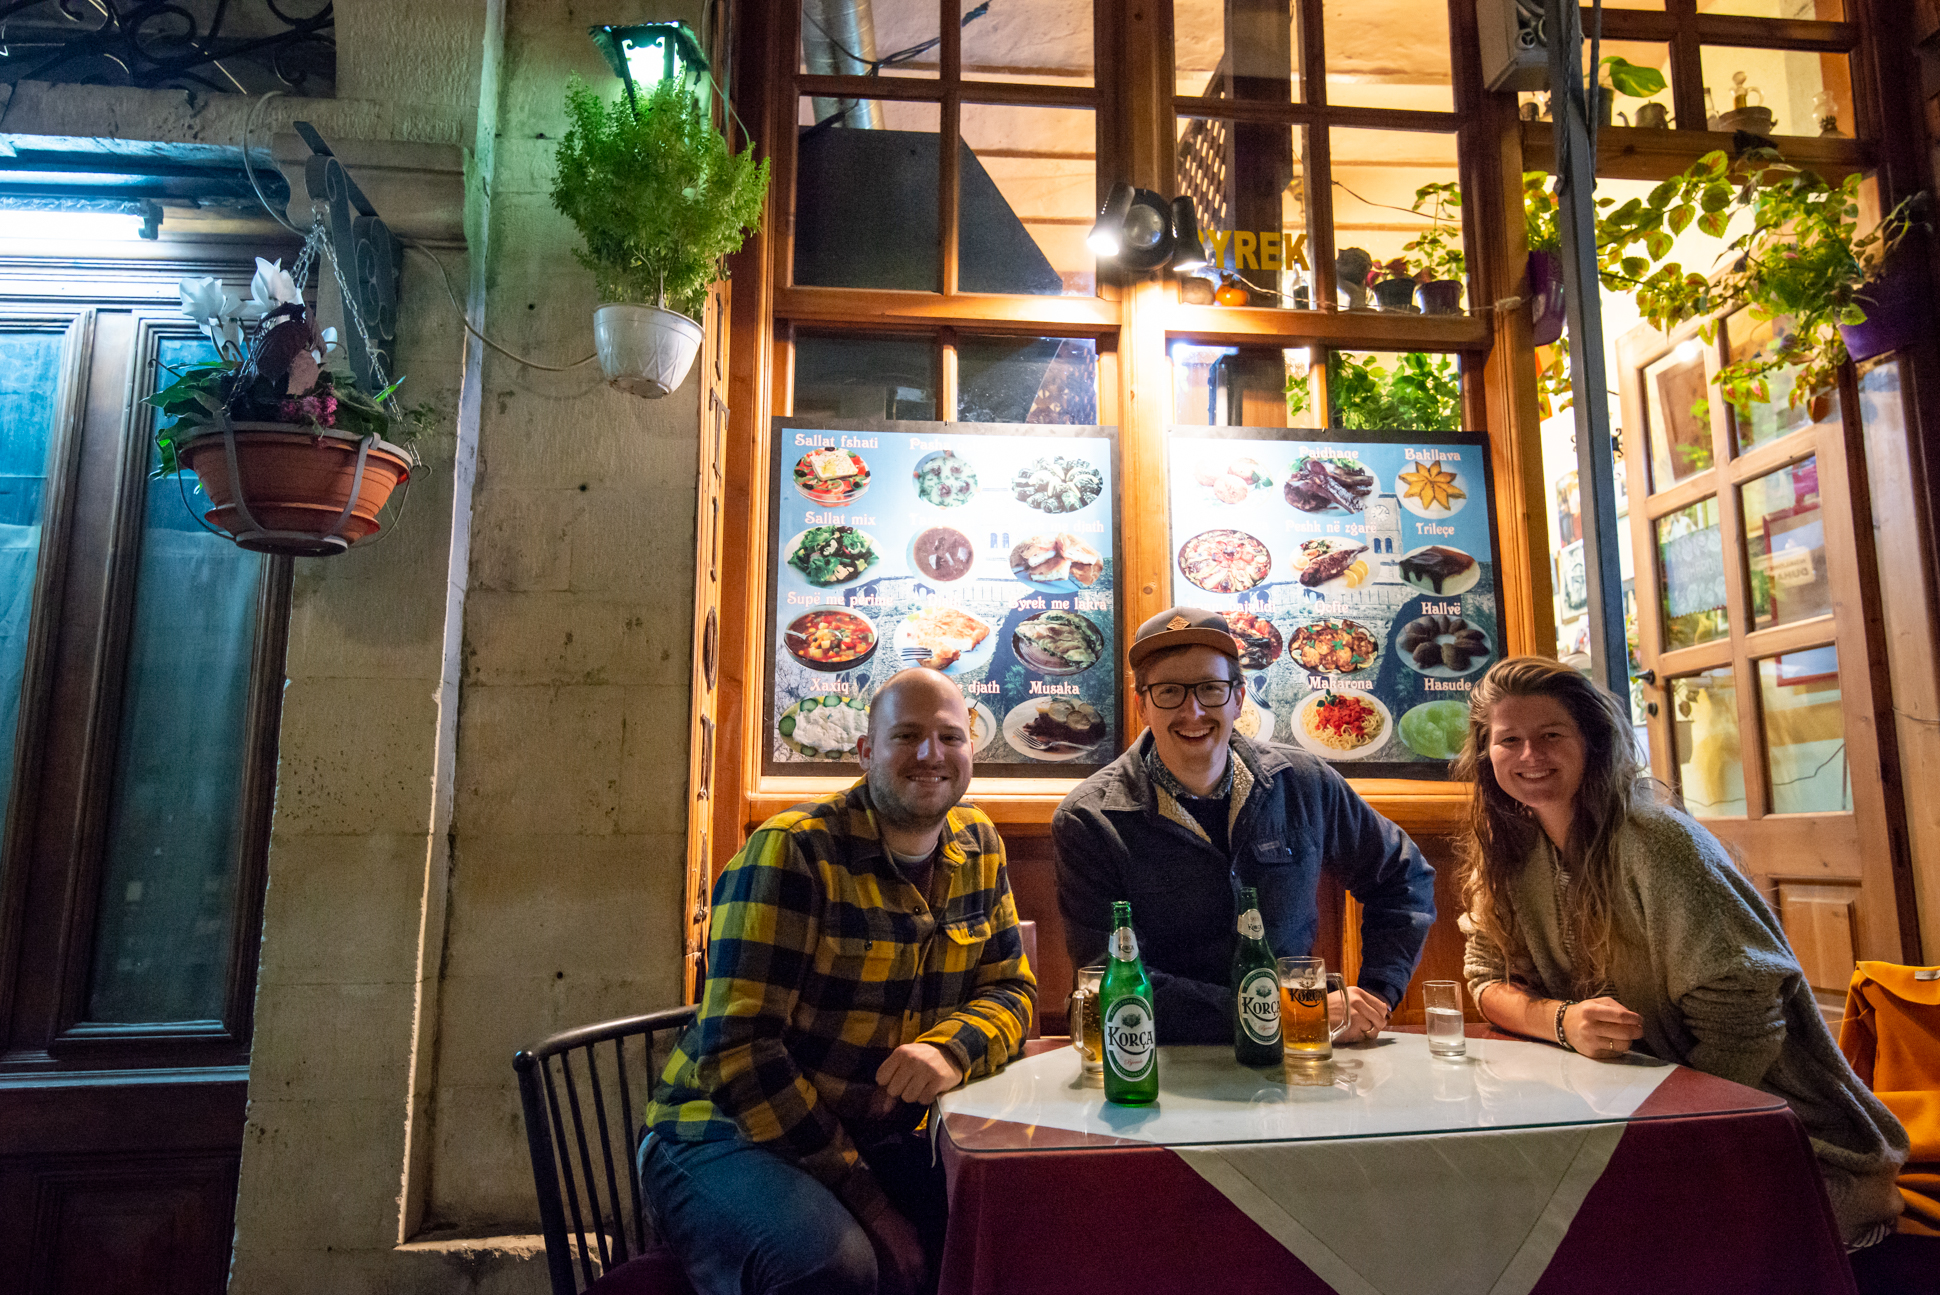 Ellis and me with their friend having diner in front of a very cute restaurant in Gjirokäster, Albania.